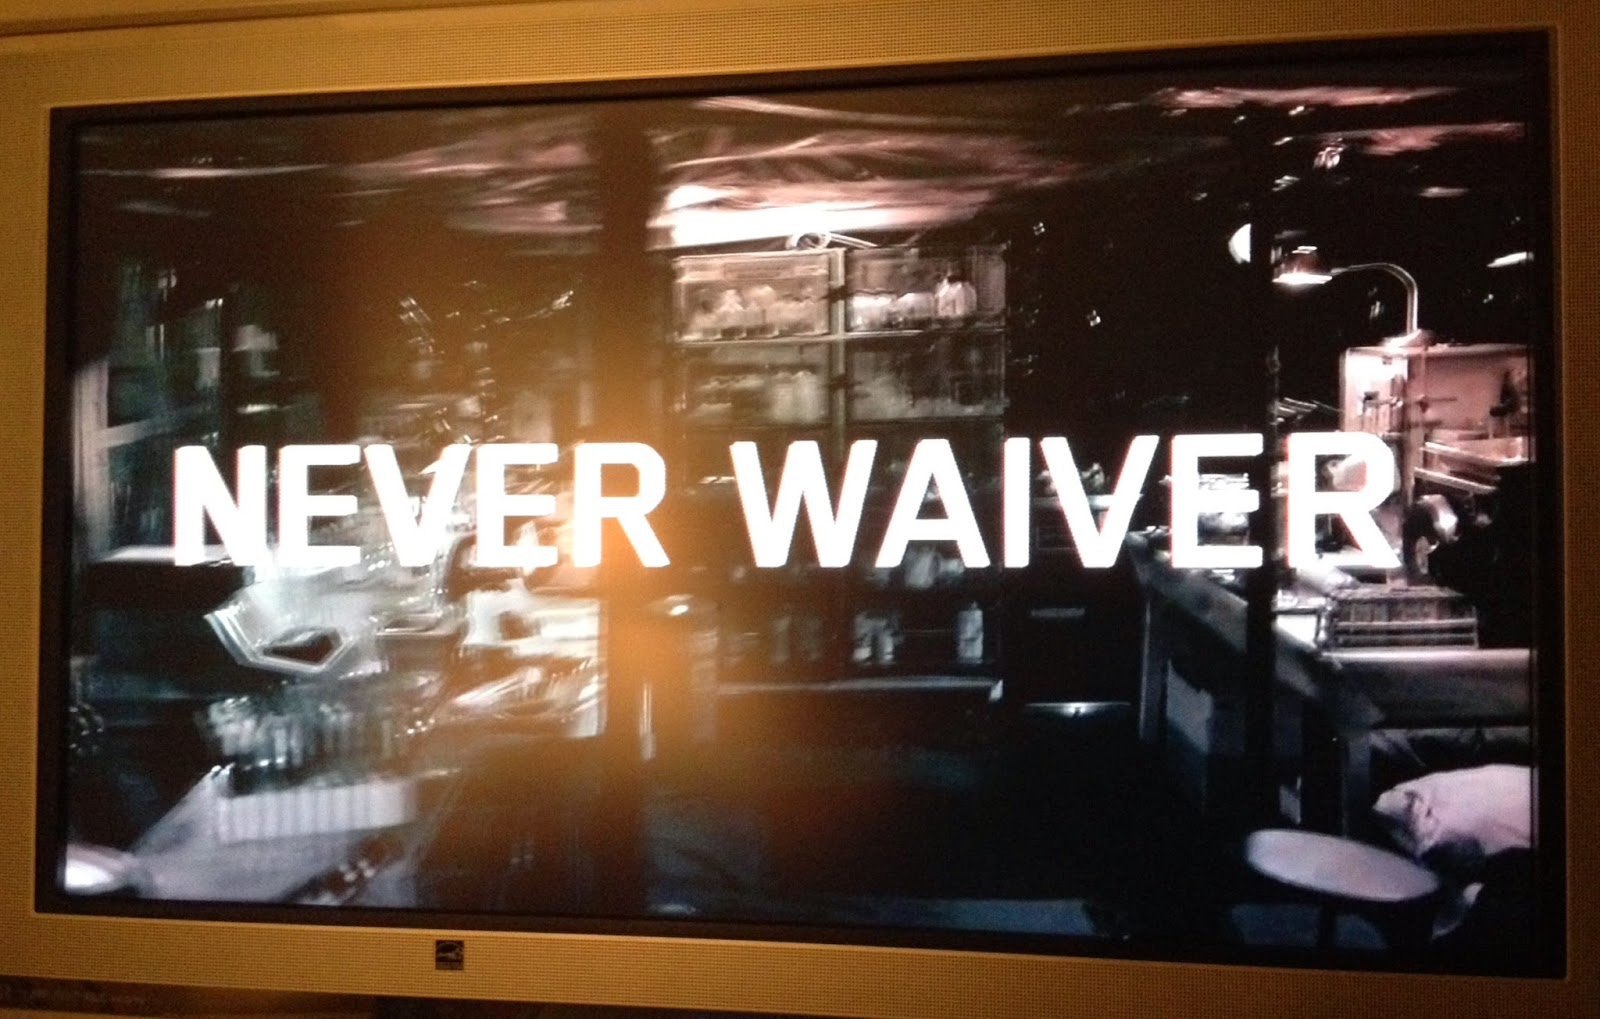 Waiver instead of Waver on TNT promo for The Last Ship